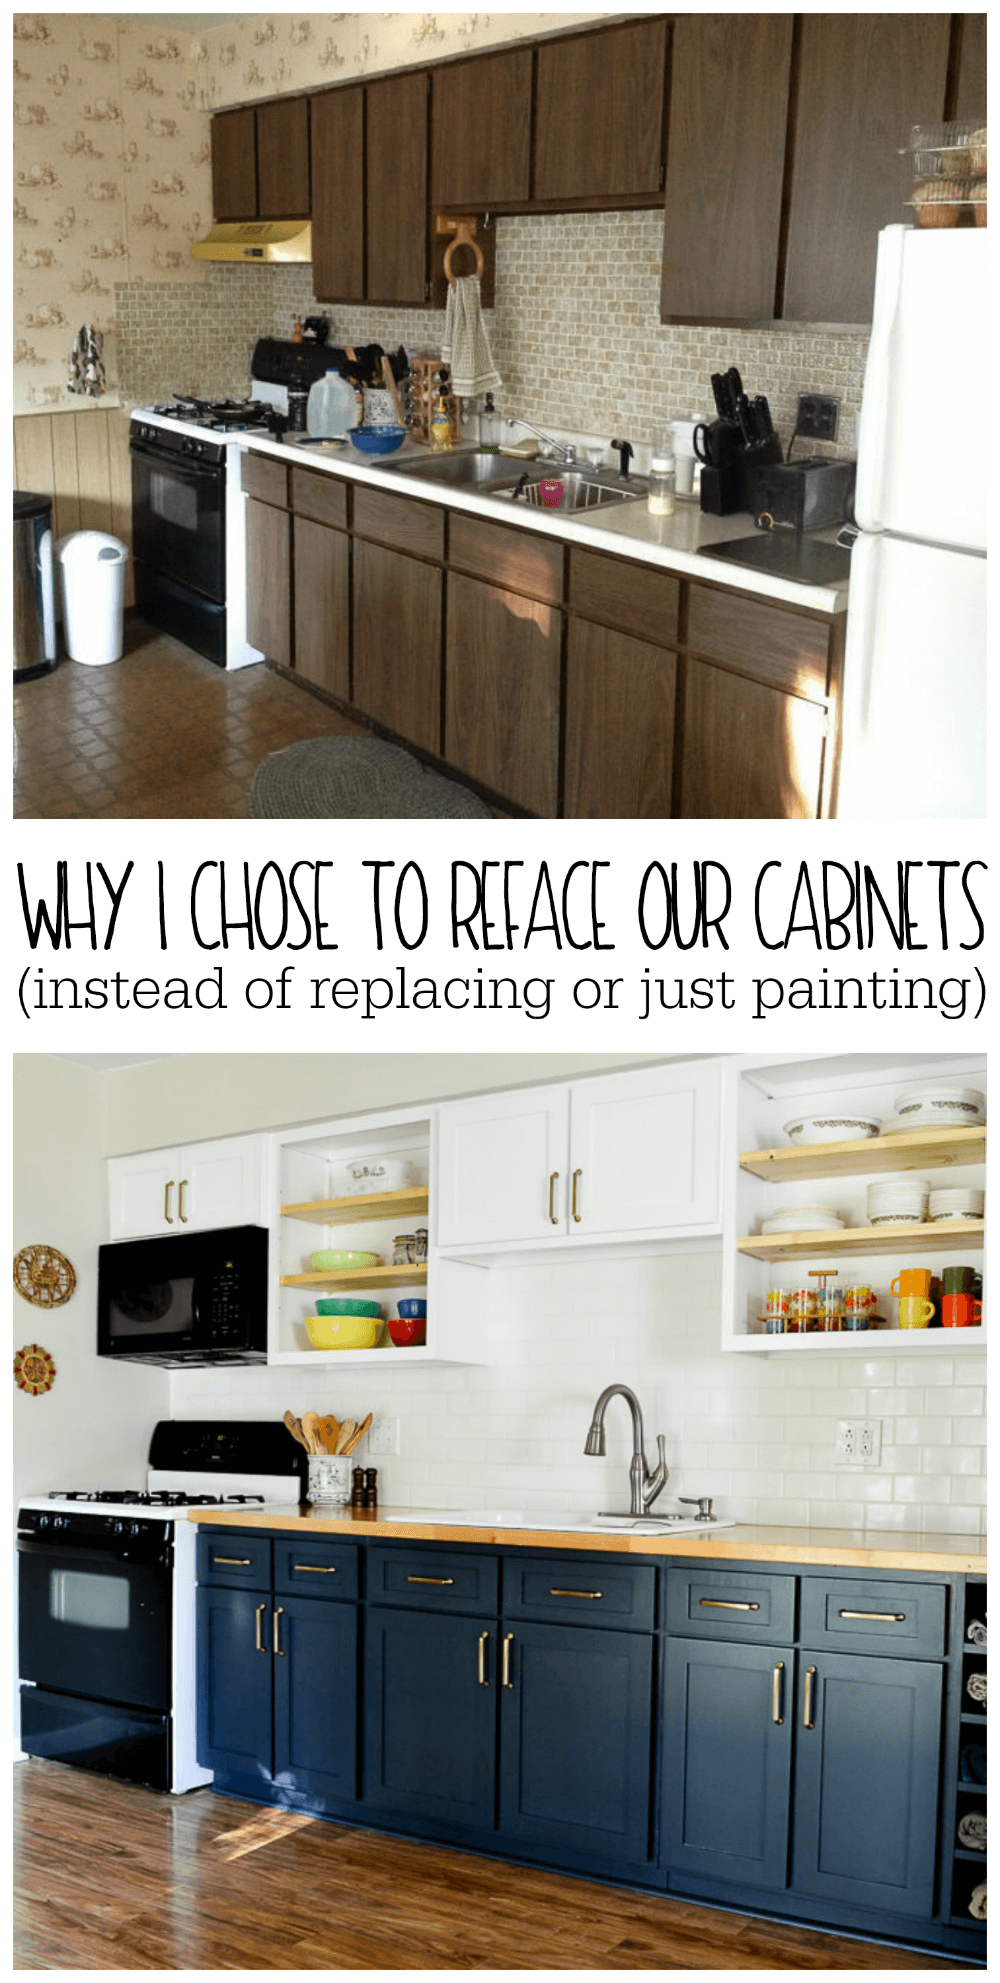 Replace Doors Replacing Cabinet Doors Instead Of Buying New Cabinets Or Just